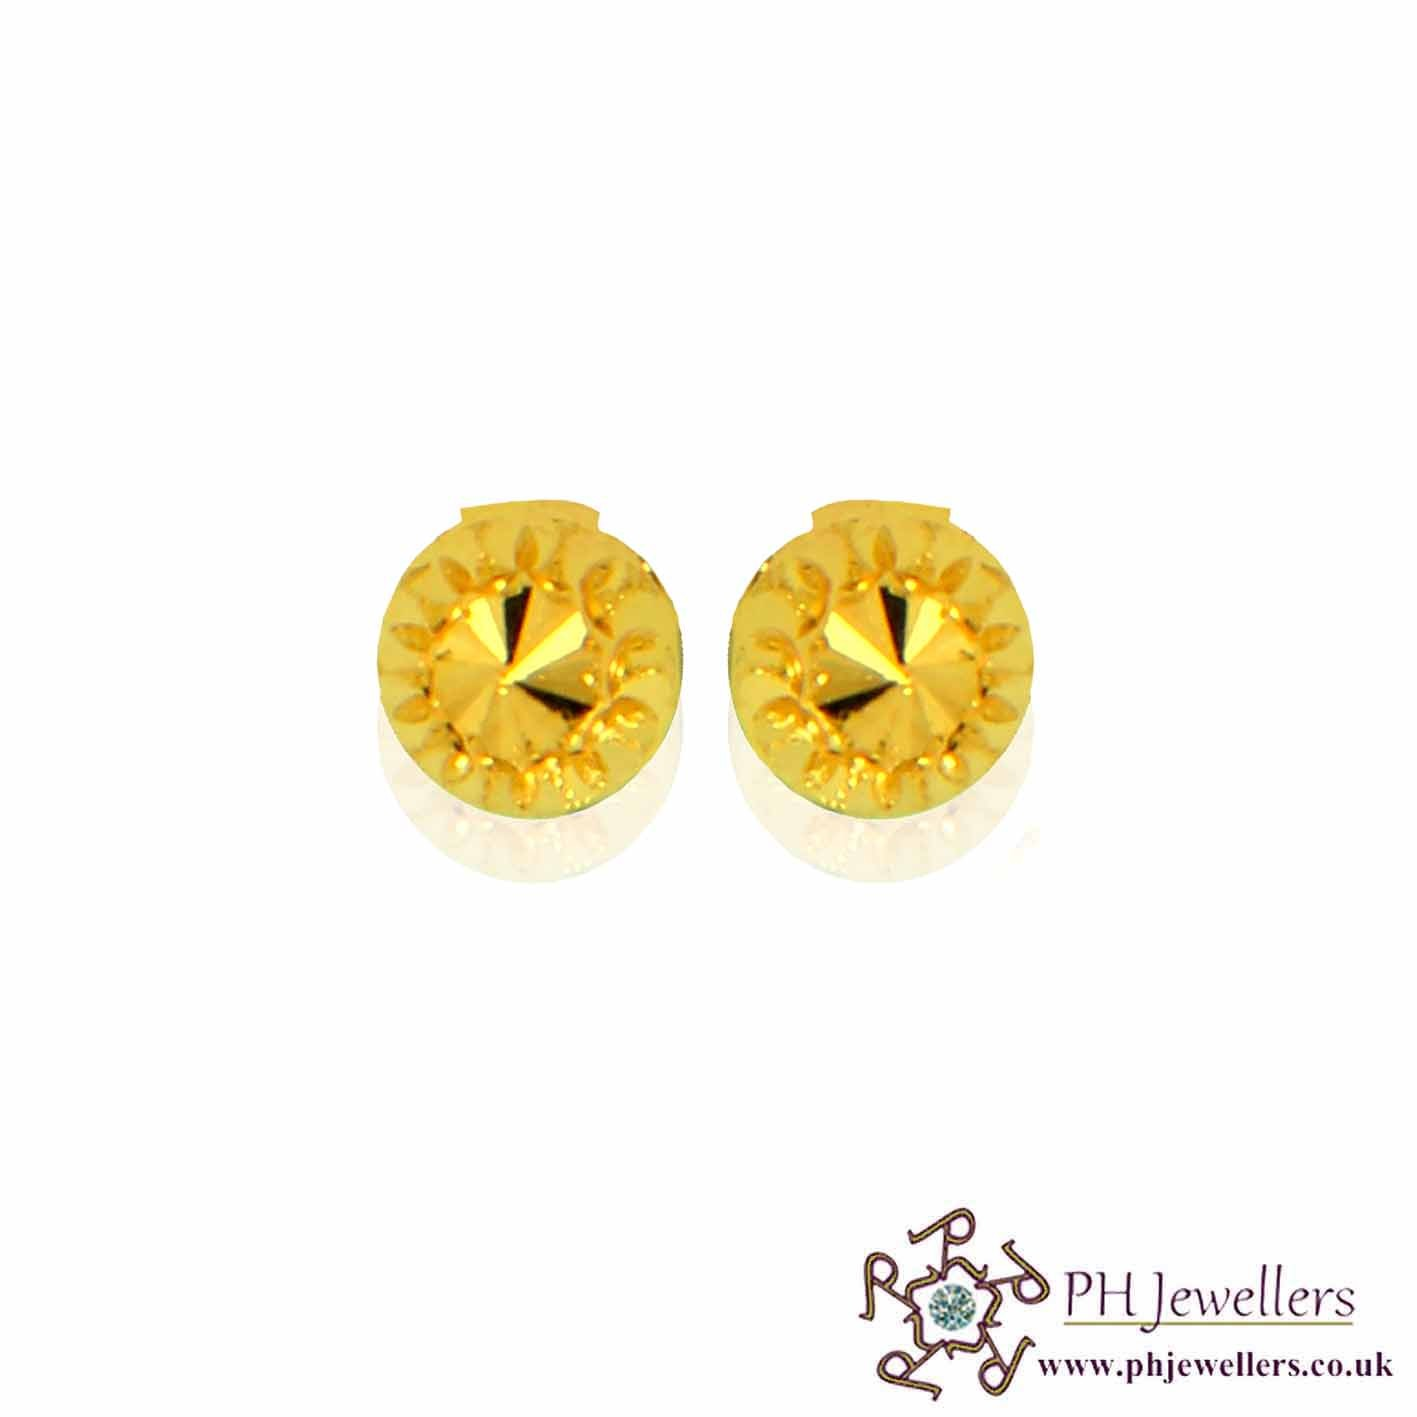 22ct 916 Yellow Gold Earring SE50